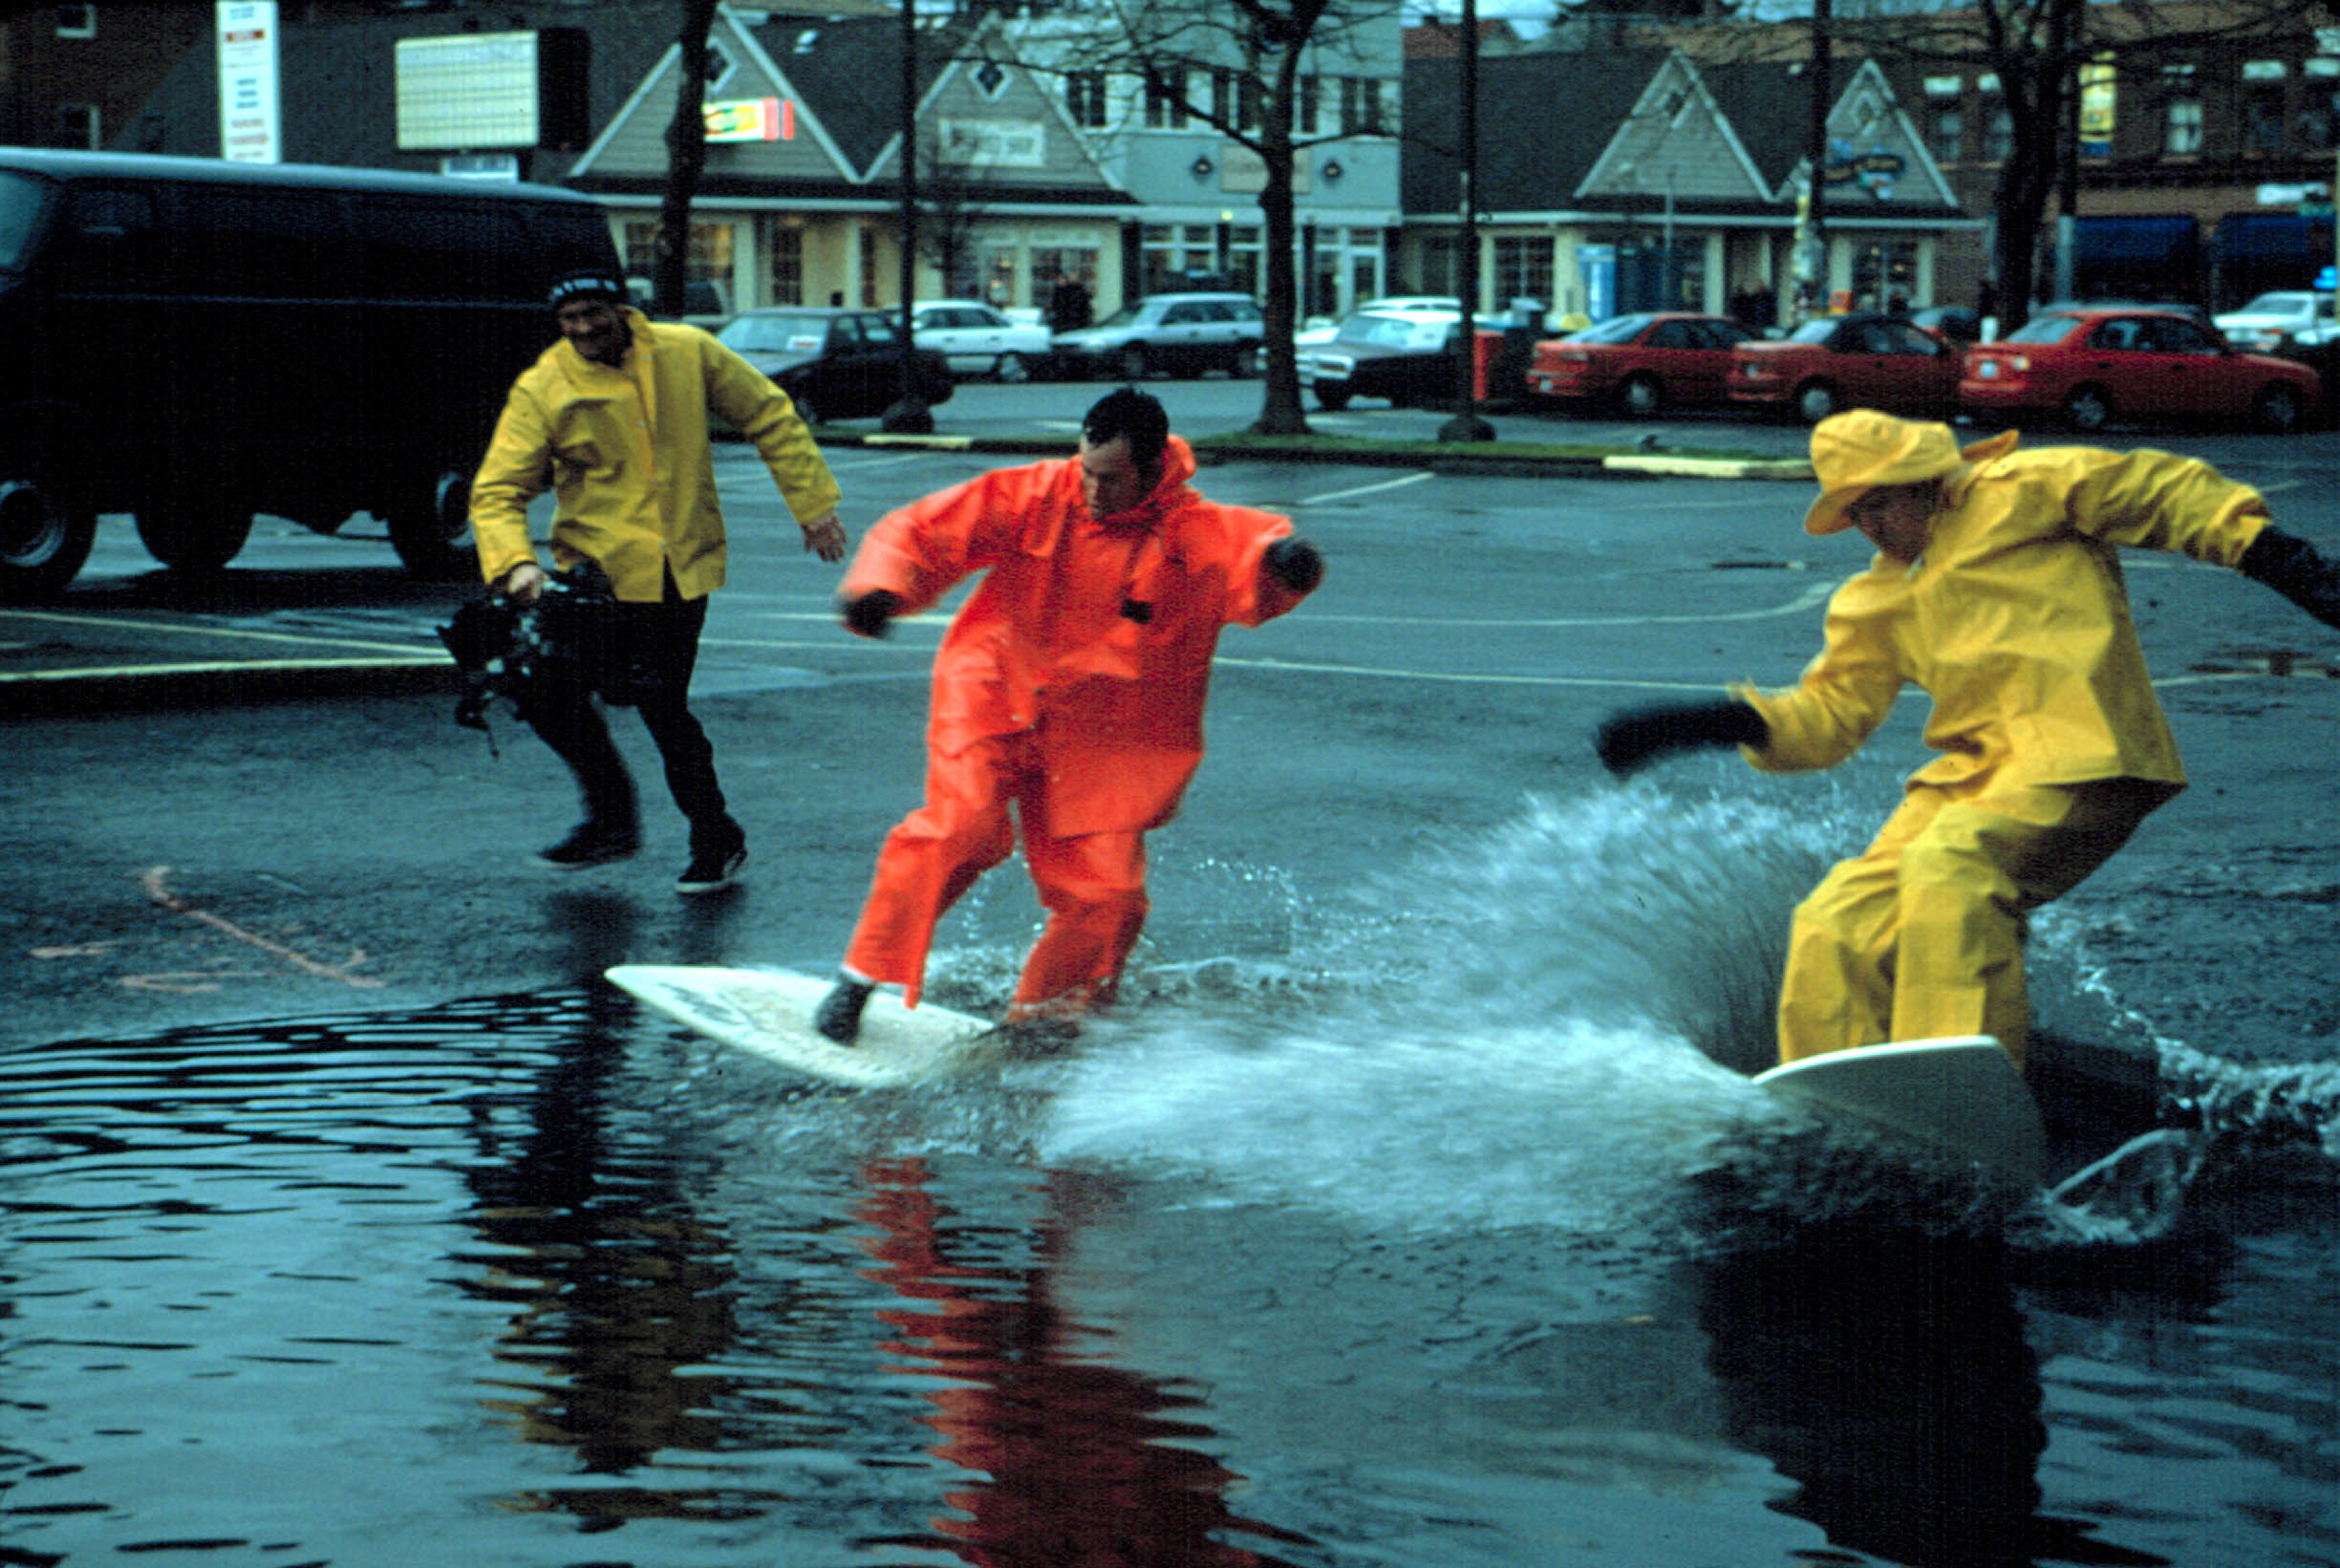 The jackass guys surfing on a flooded road